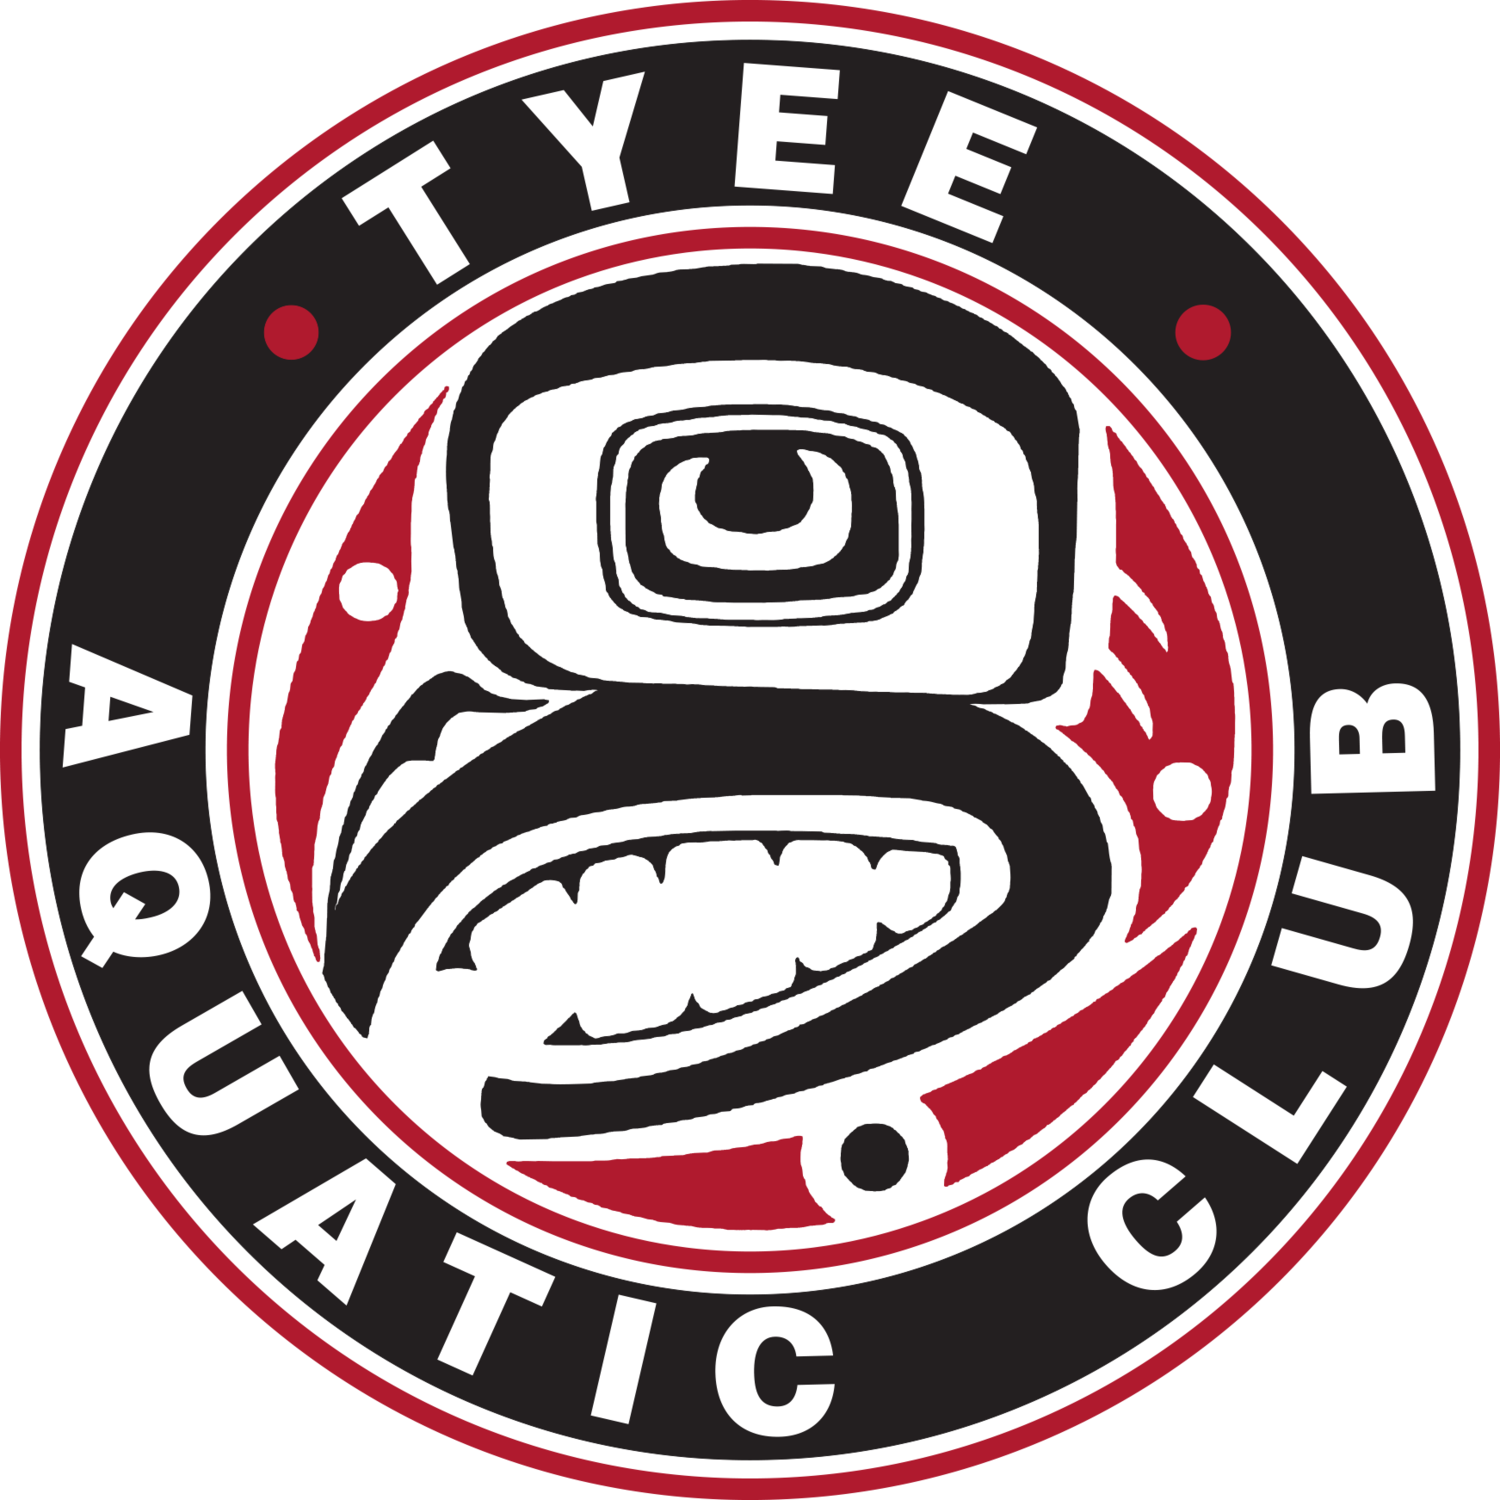 Tyee Aquatic Club